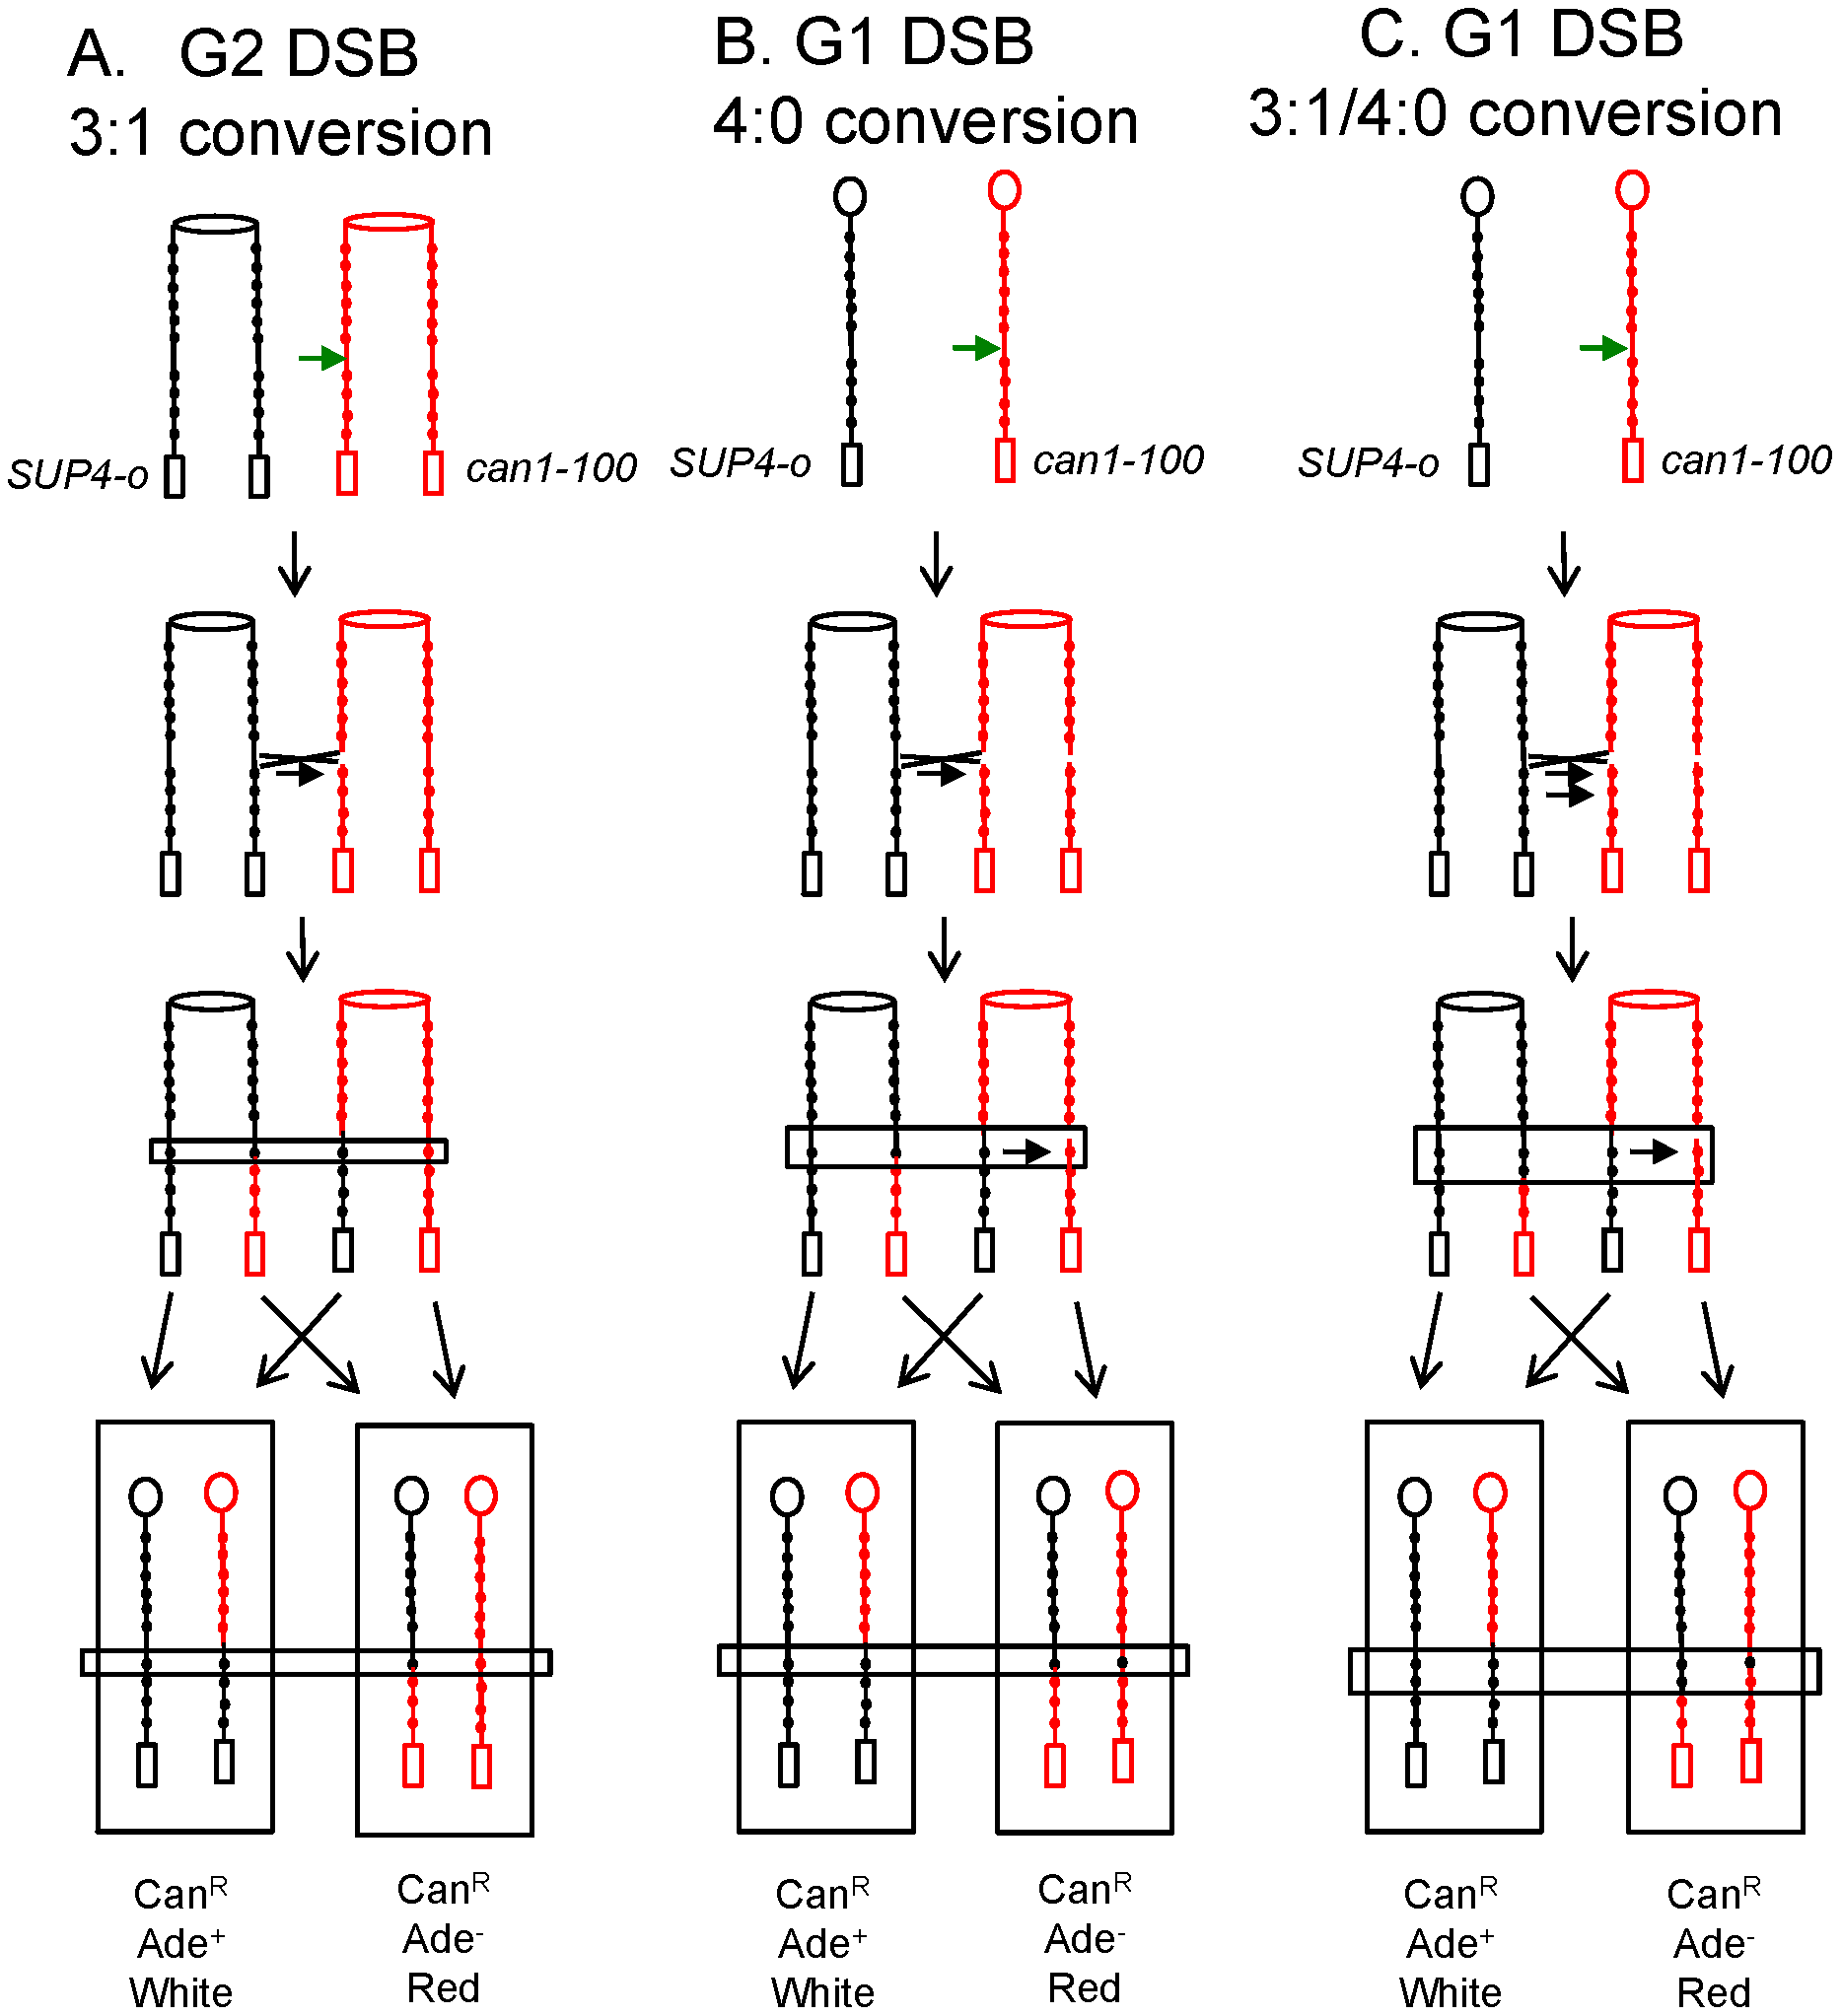 Gene conversion events associated with crossovers in G2 and G1.